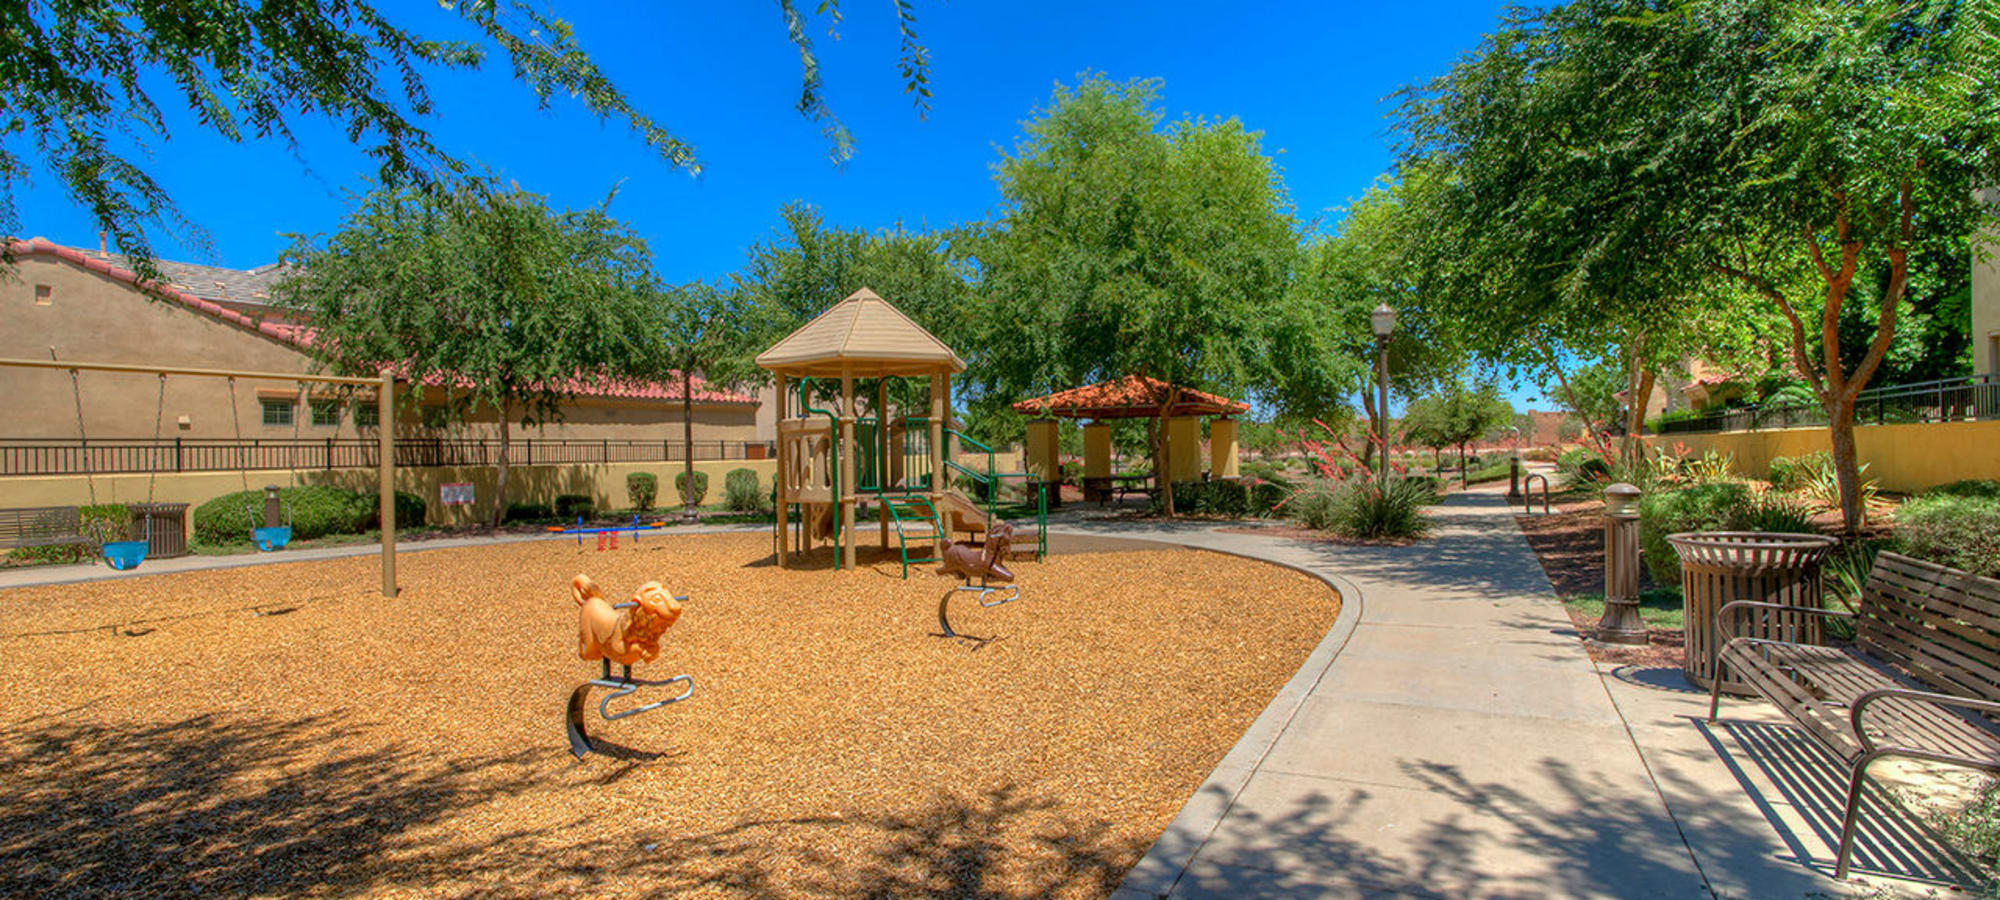 Walkway around playground at BB Living at Higley Park in Gilbert, Arizona